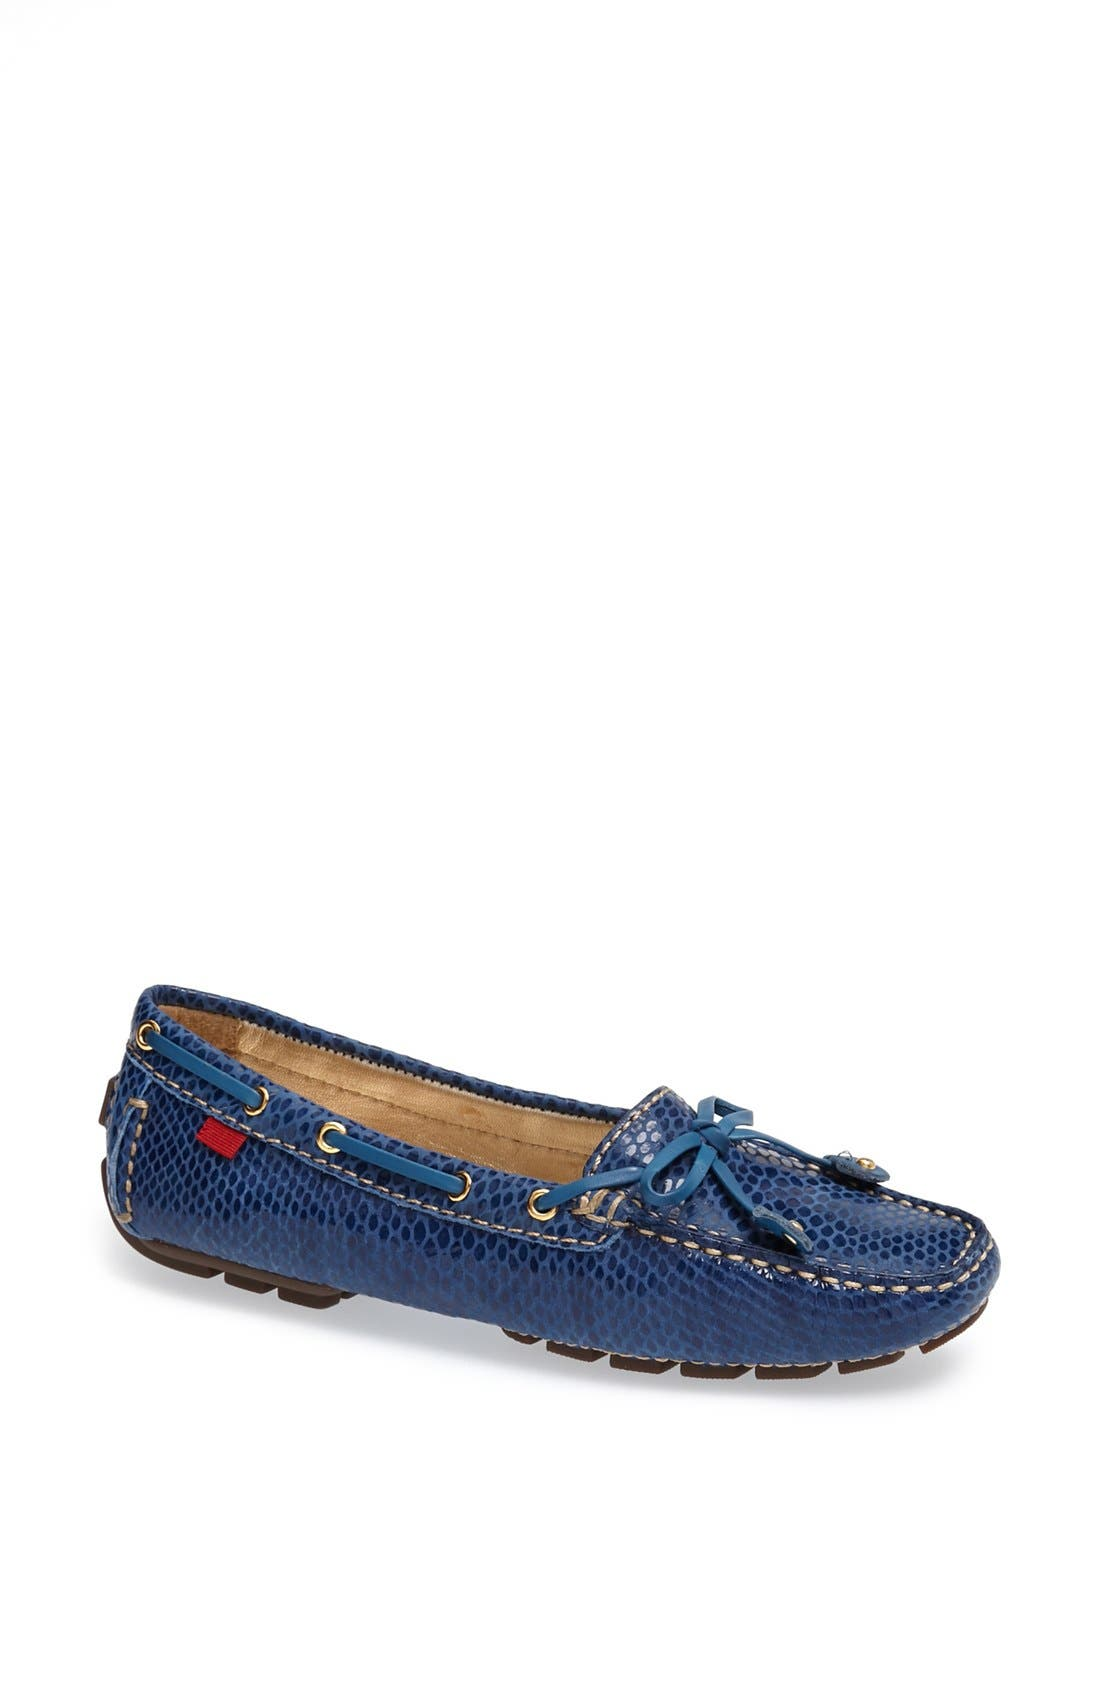 Main Image - Marc Joseph New York 'Cypress Hill Snakes' Loafer